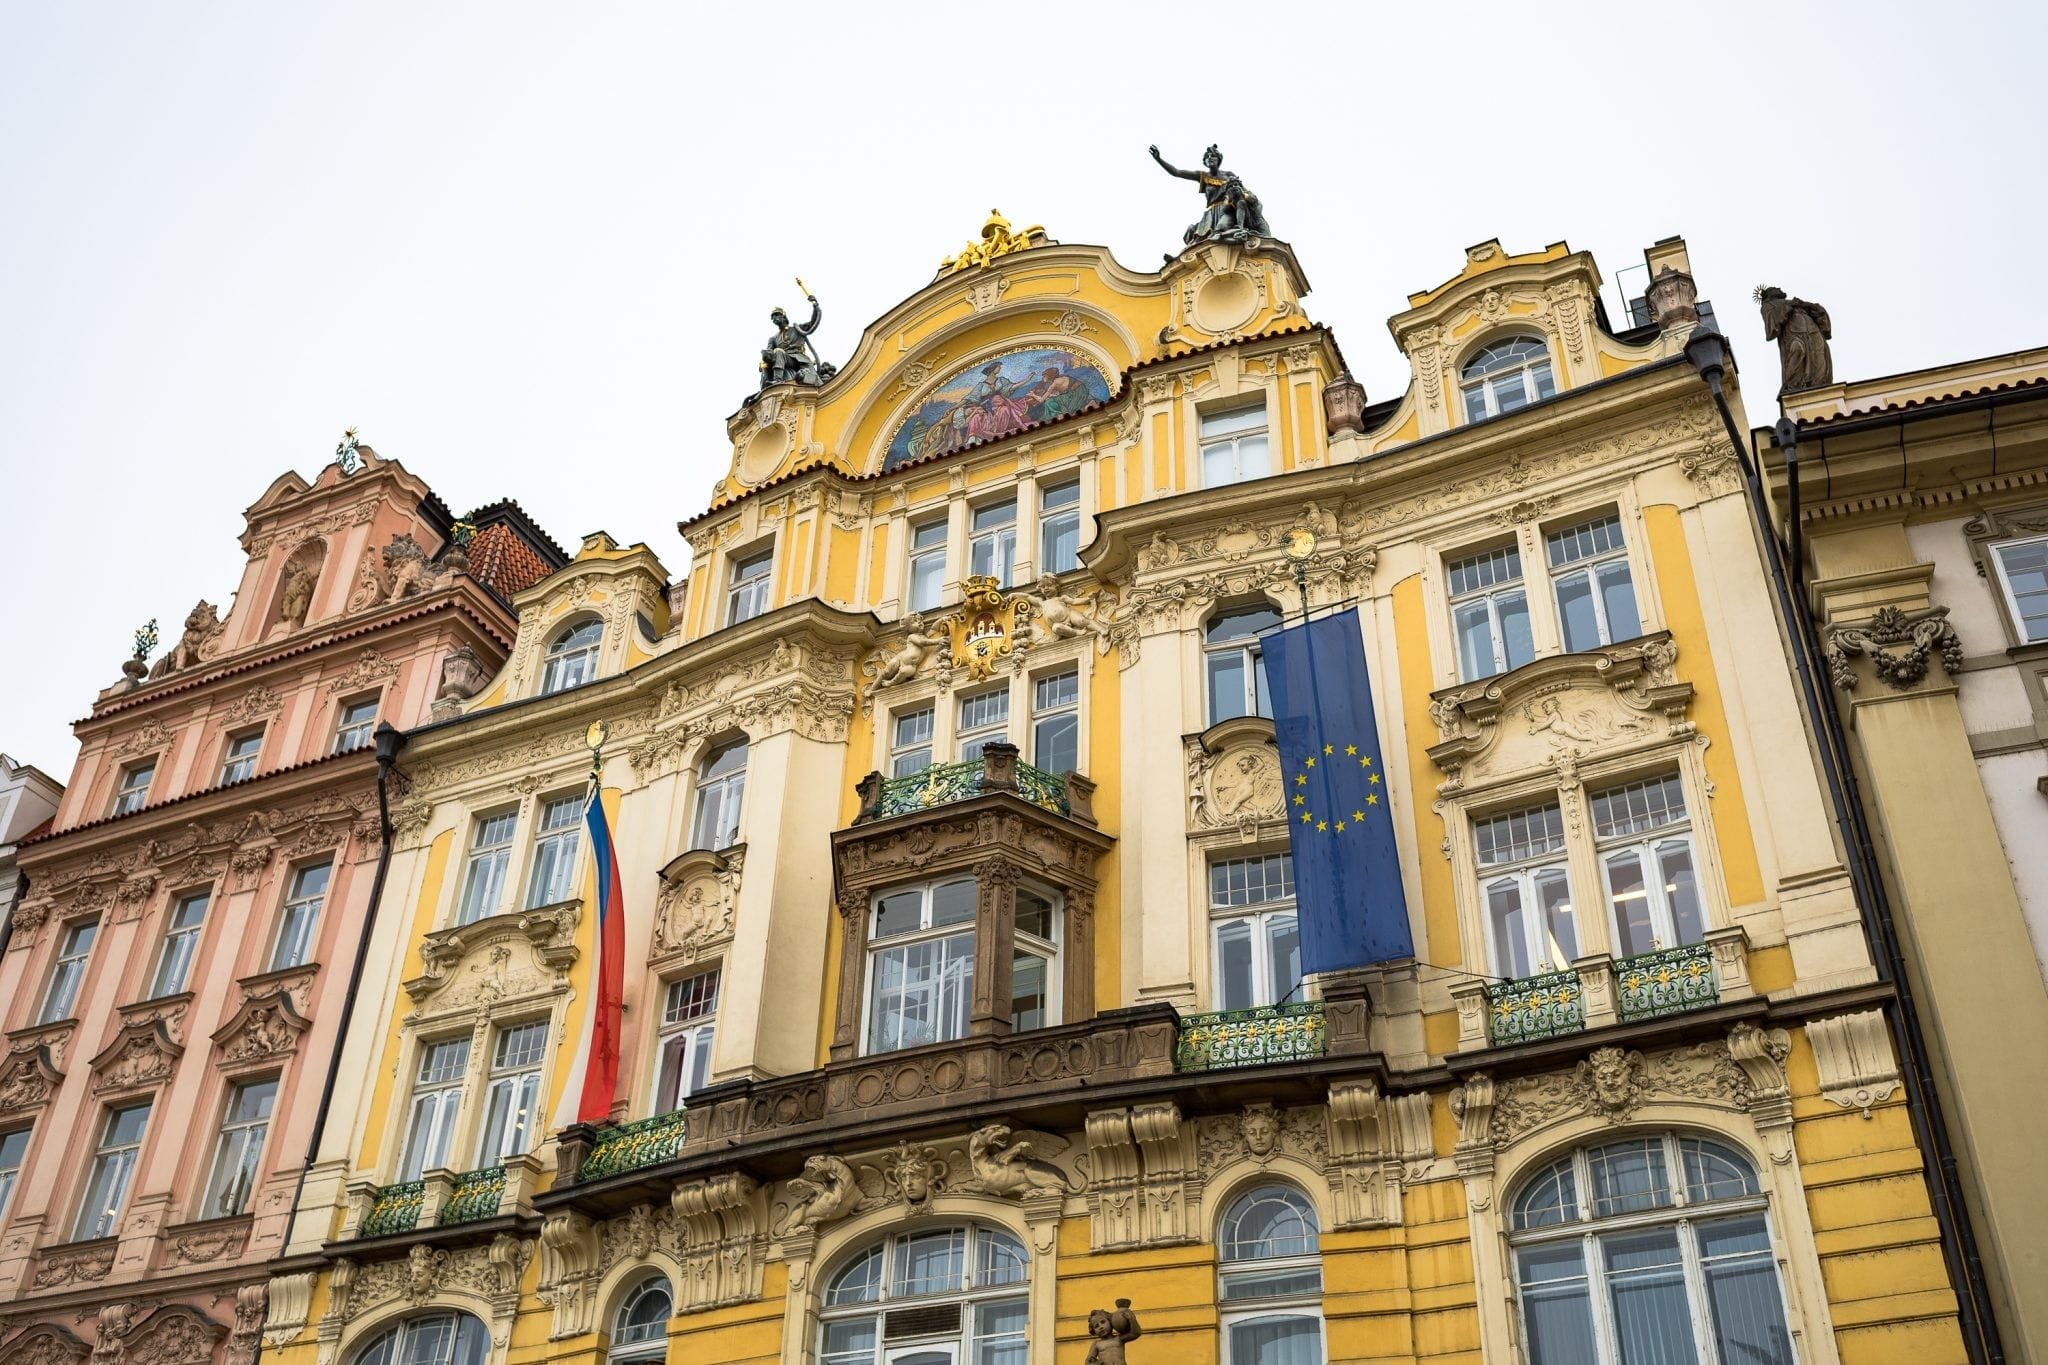 PragueScenery - Last Minute Luxury Travel in Prague